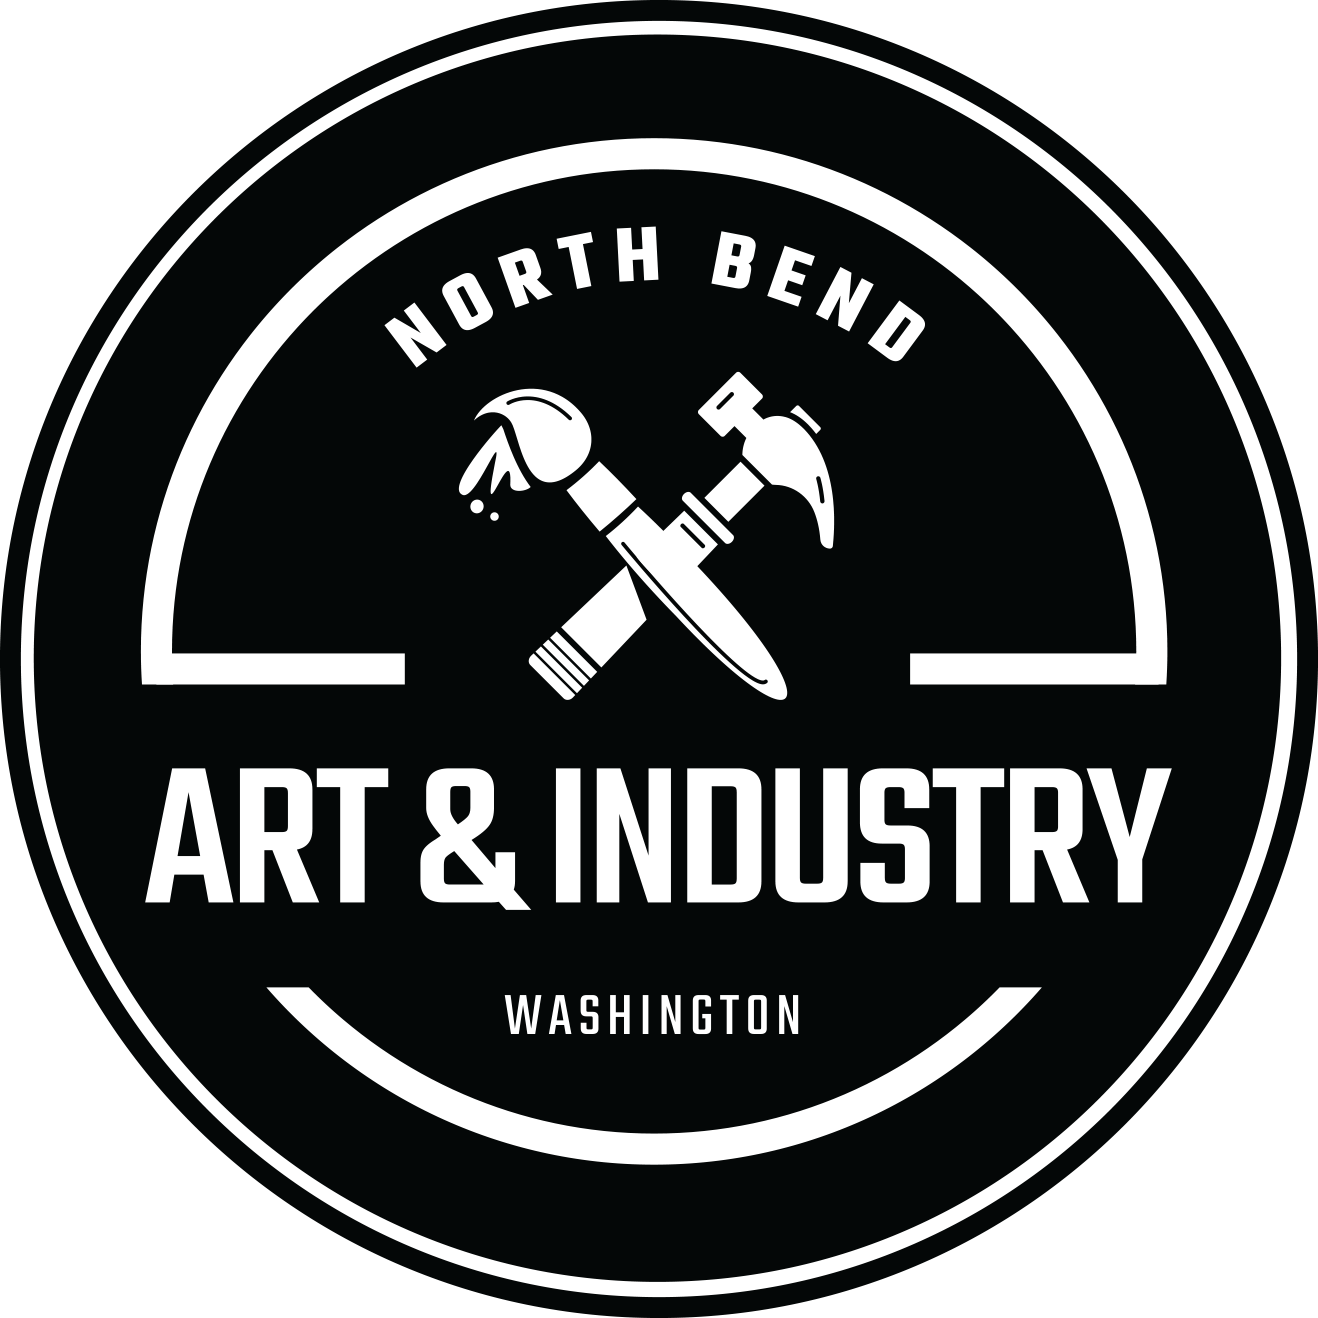 North Bend Art & Industry